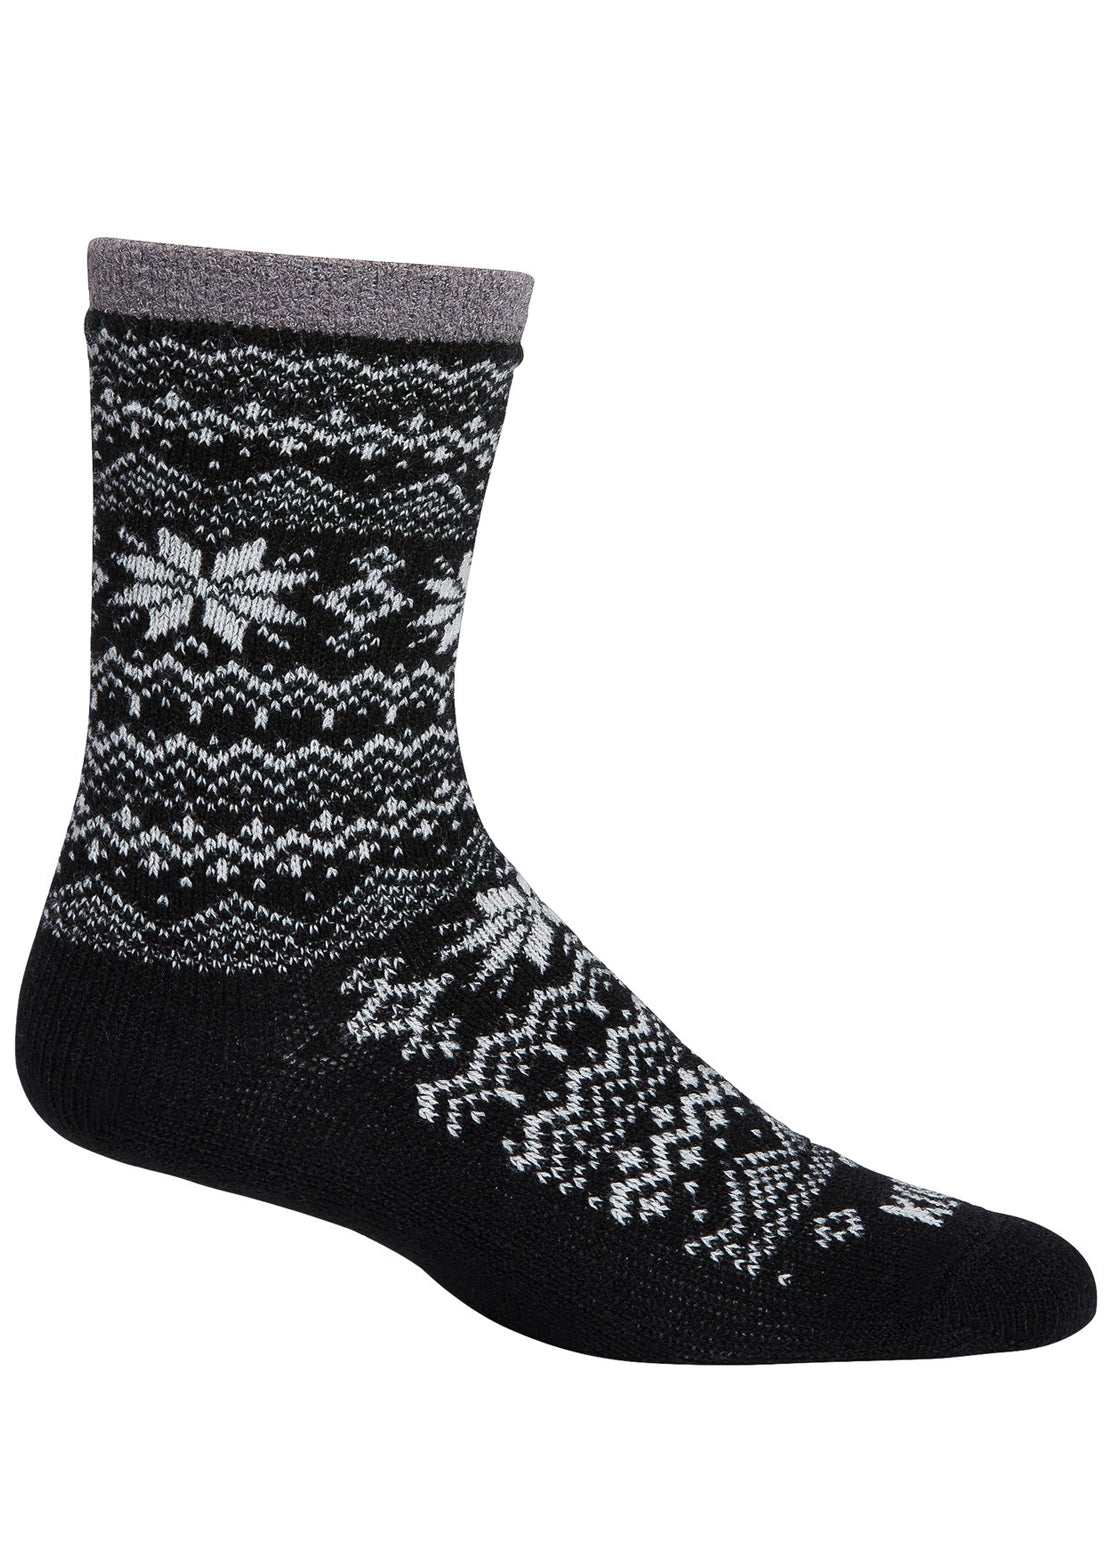 Kombi The Cabin Socks Black